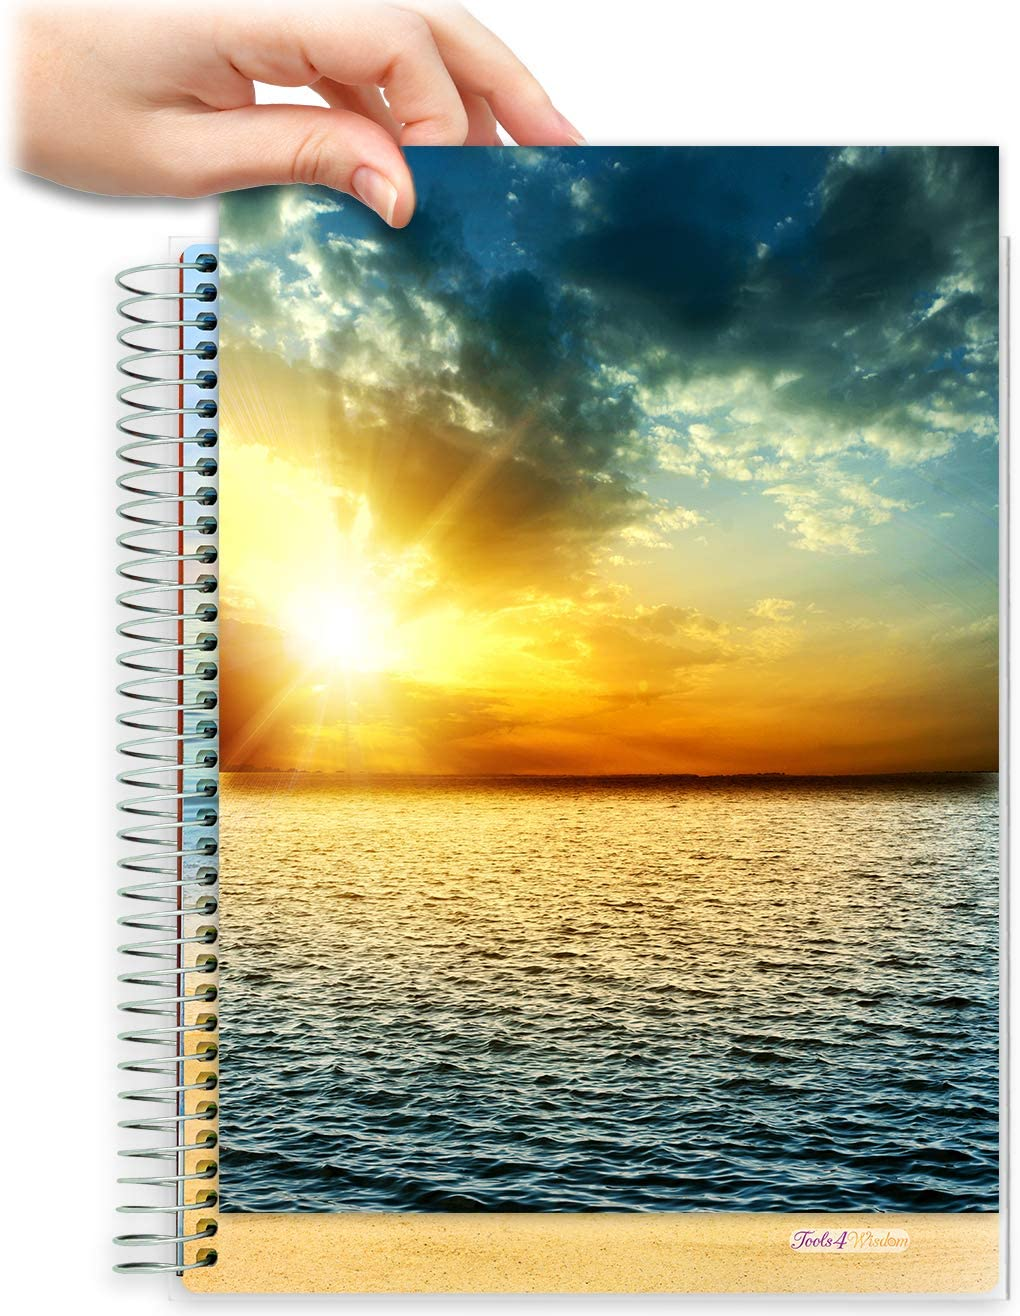 8.5x11 Customizable Softcover Planner • April 2021 to June 2022 Academic Year • Ocean Sunset